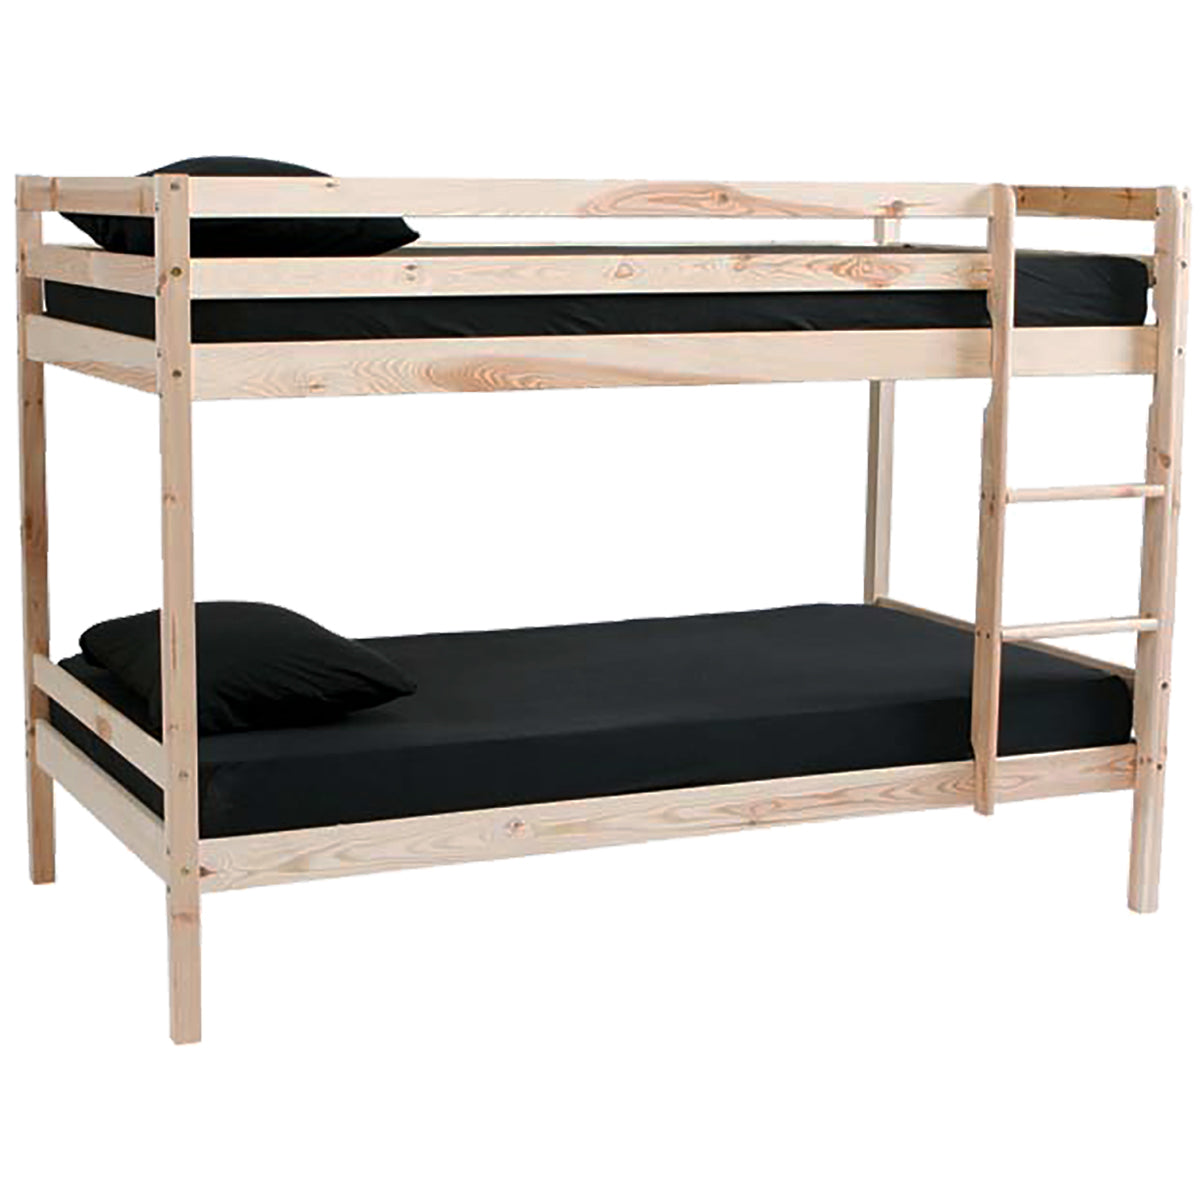 Picture of: Wooden Bunk Beds Jmart Warehouse